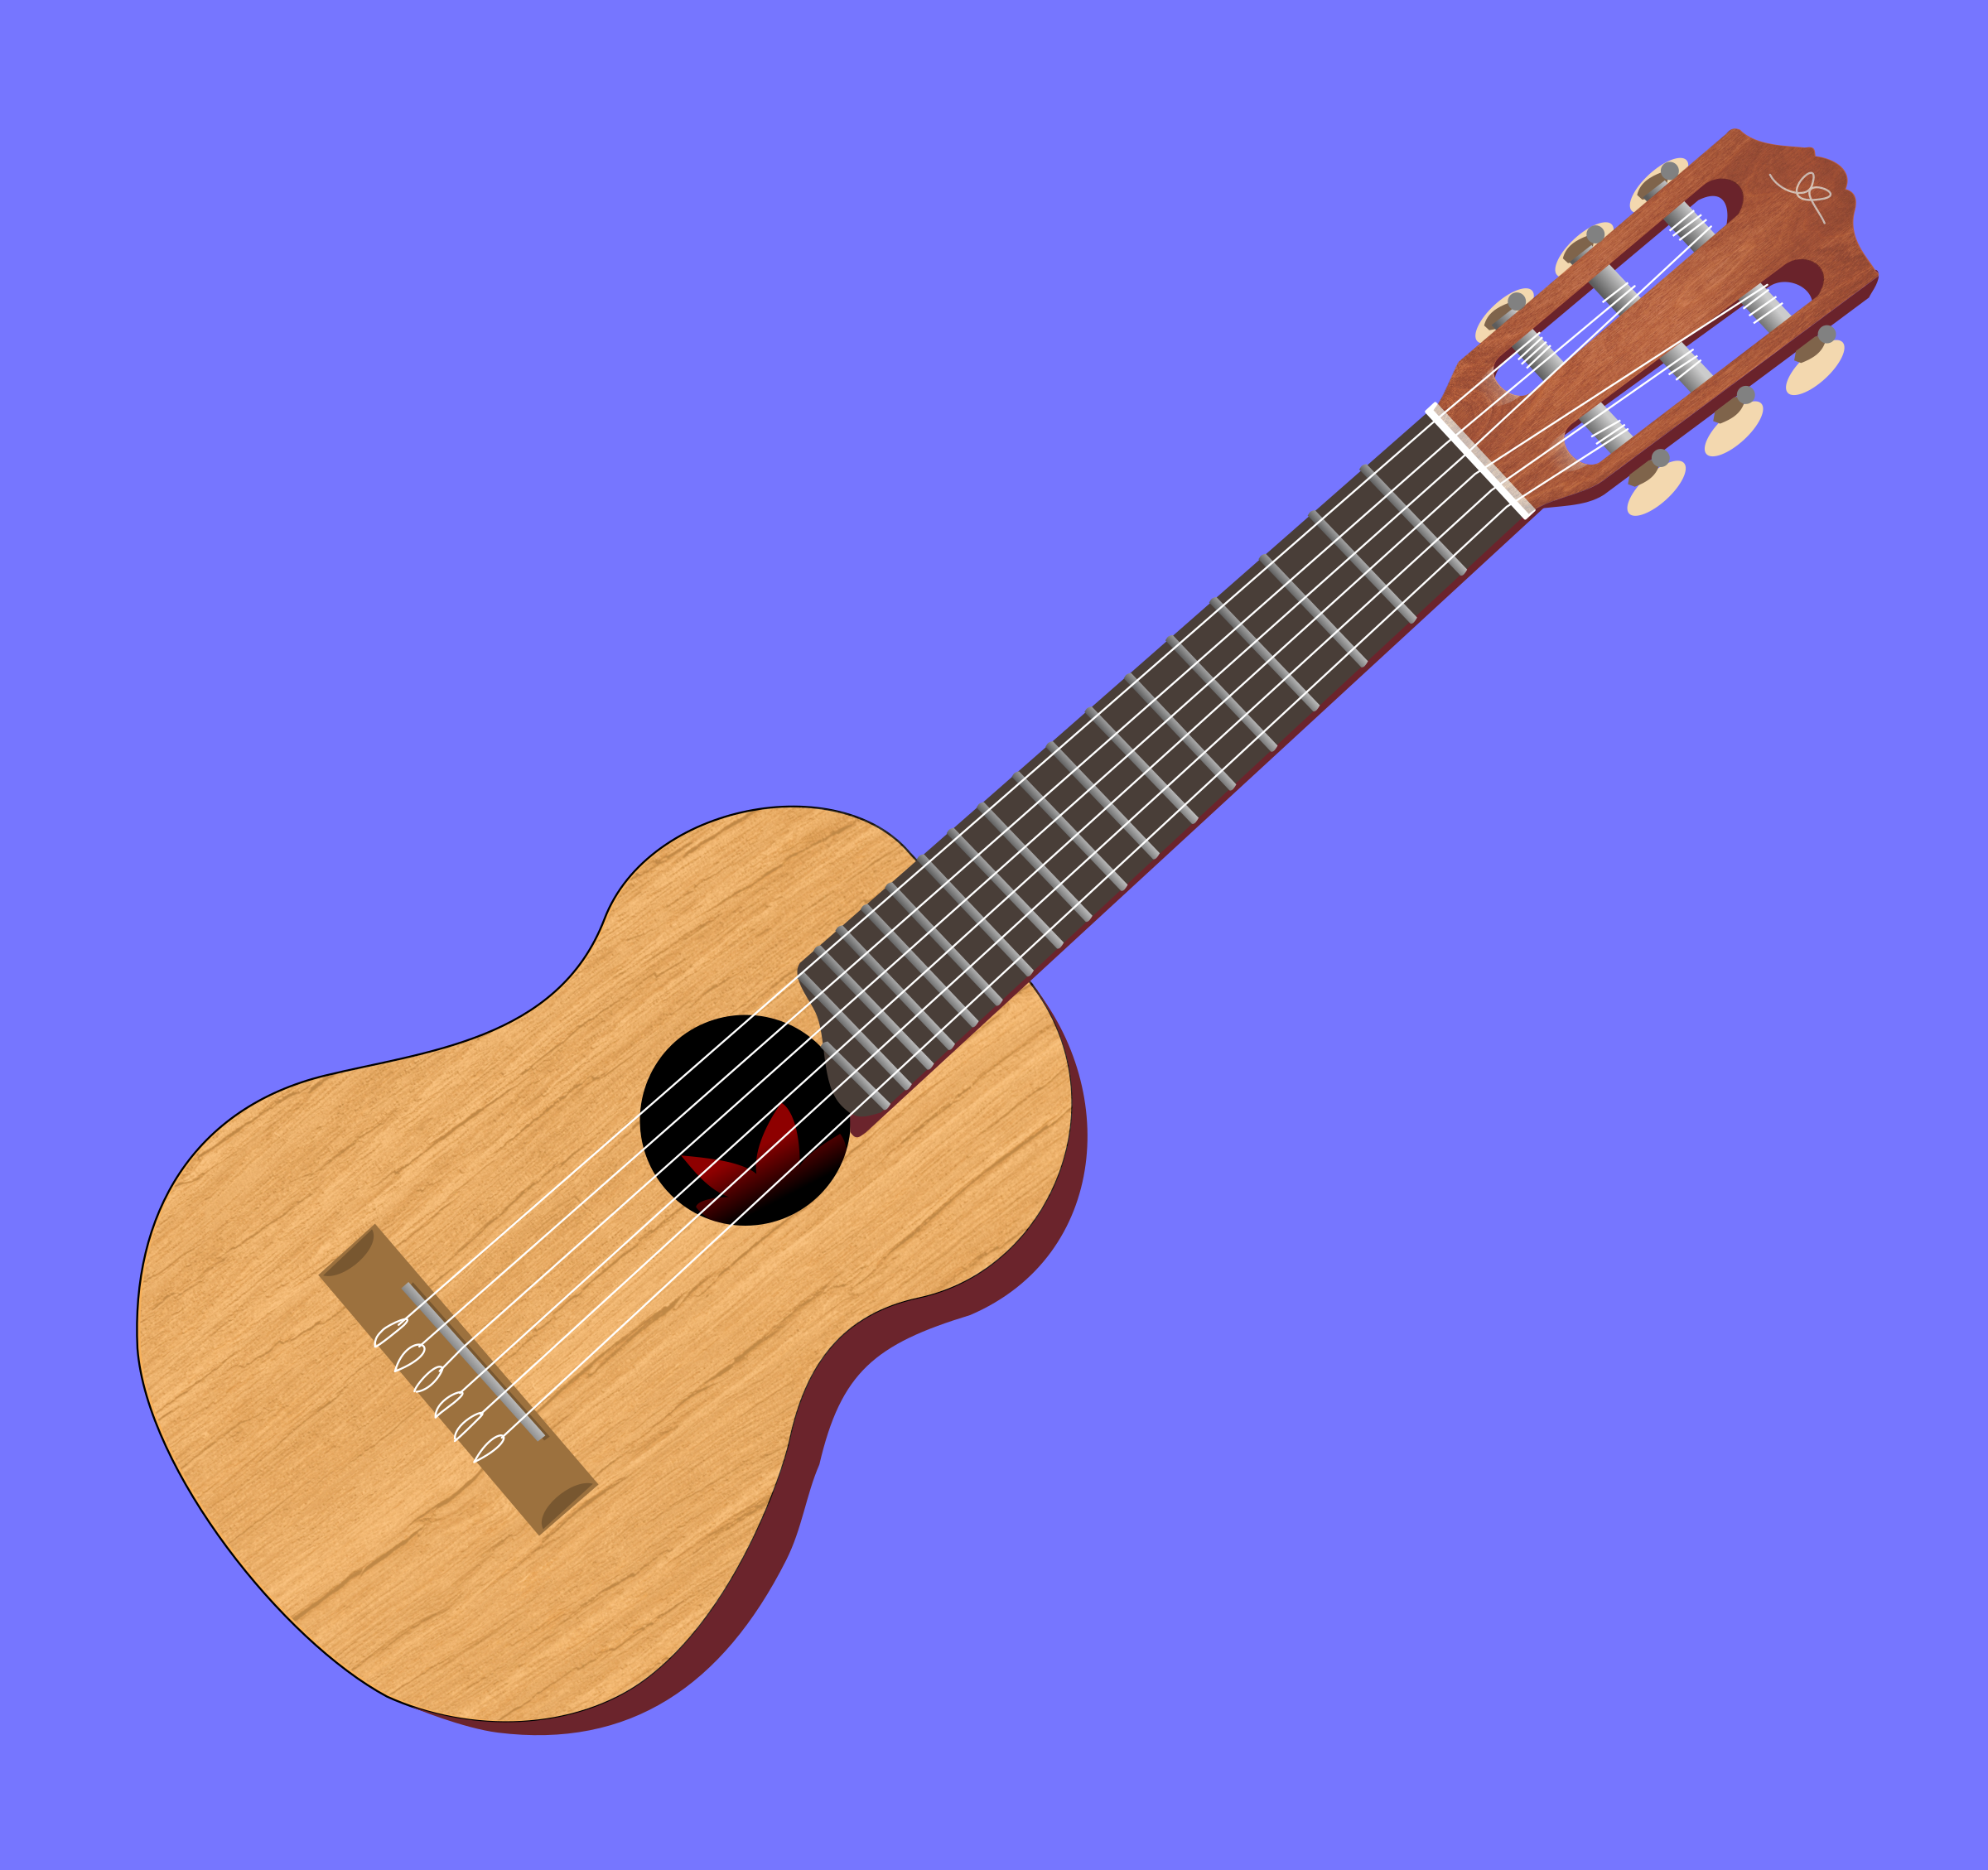 guitar by donchico